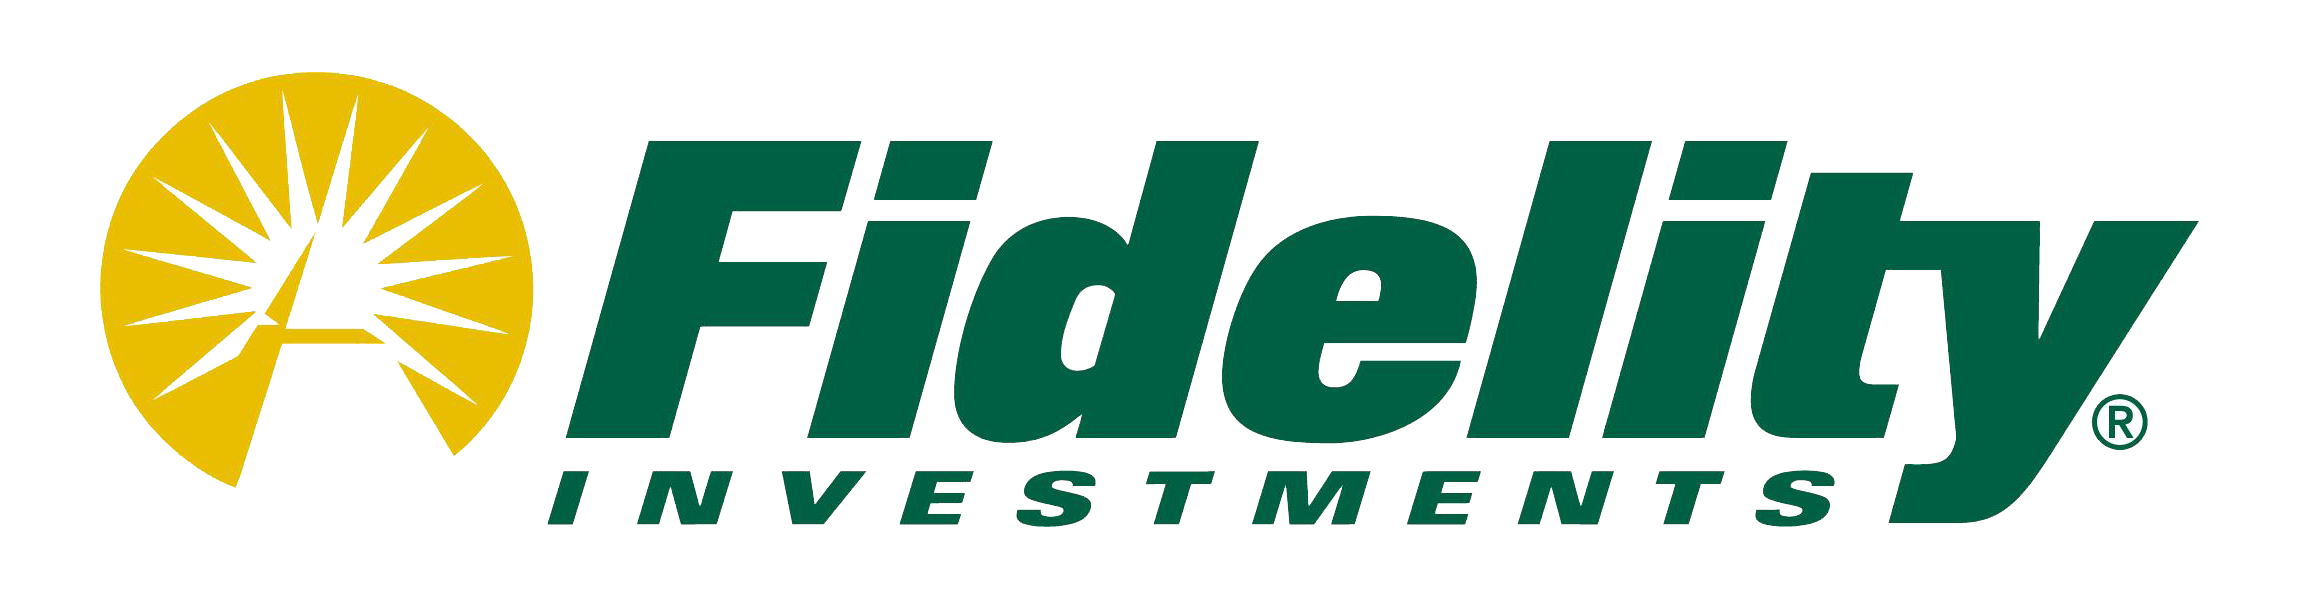 Fidelity Investments Review 2018 Excellent Customer Support